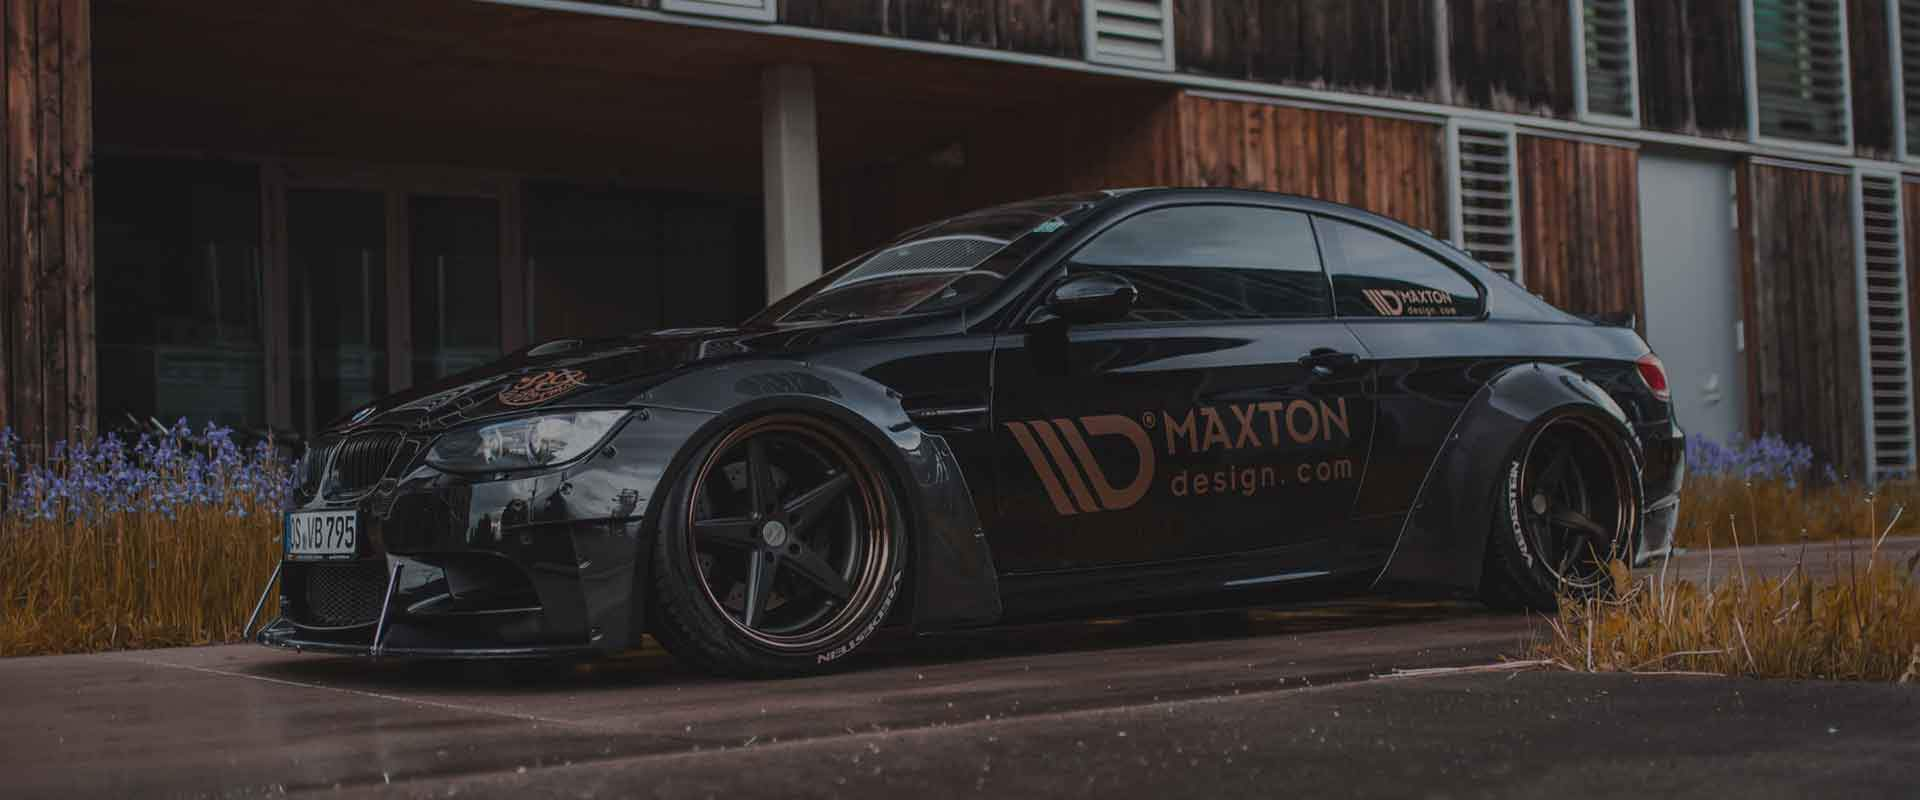 Maxton Design Bodykits